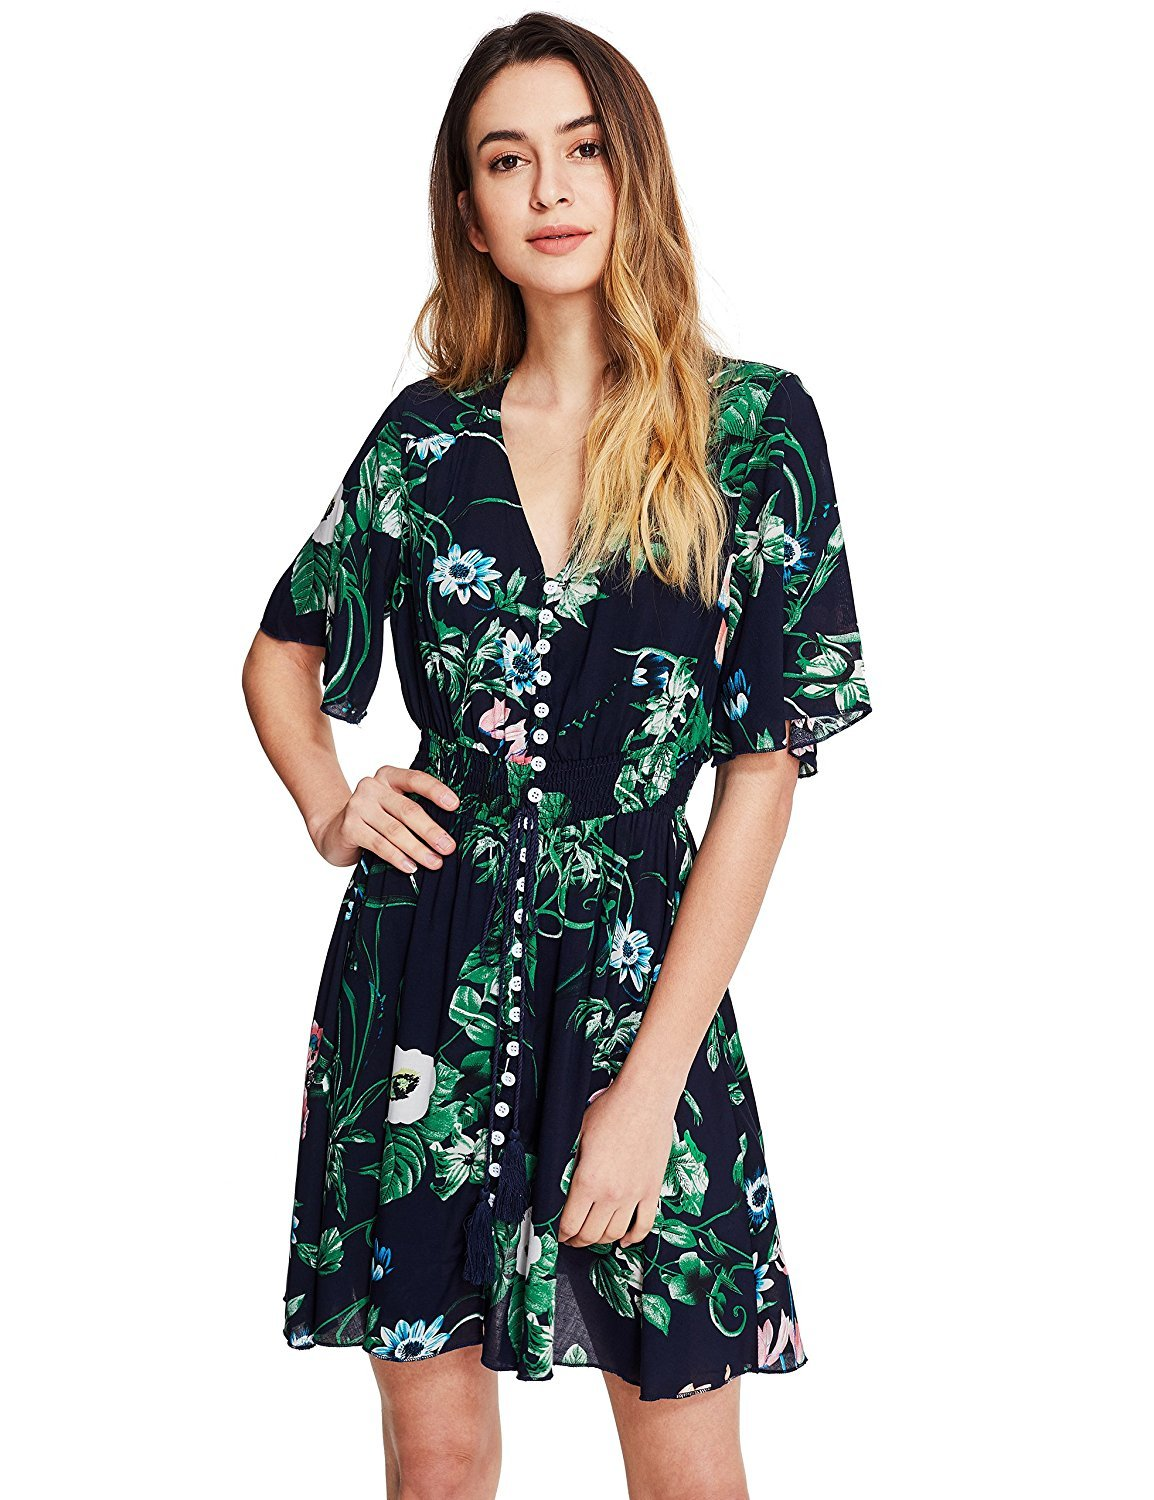 Milumia Women's Button Up Split Floral Print Flowy Party Maxi Dress Medium a-Multicolor-Green by Milumia